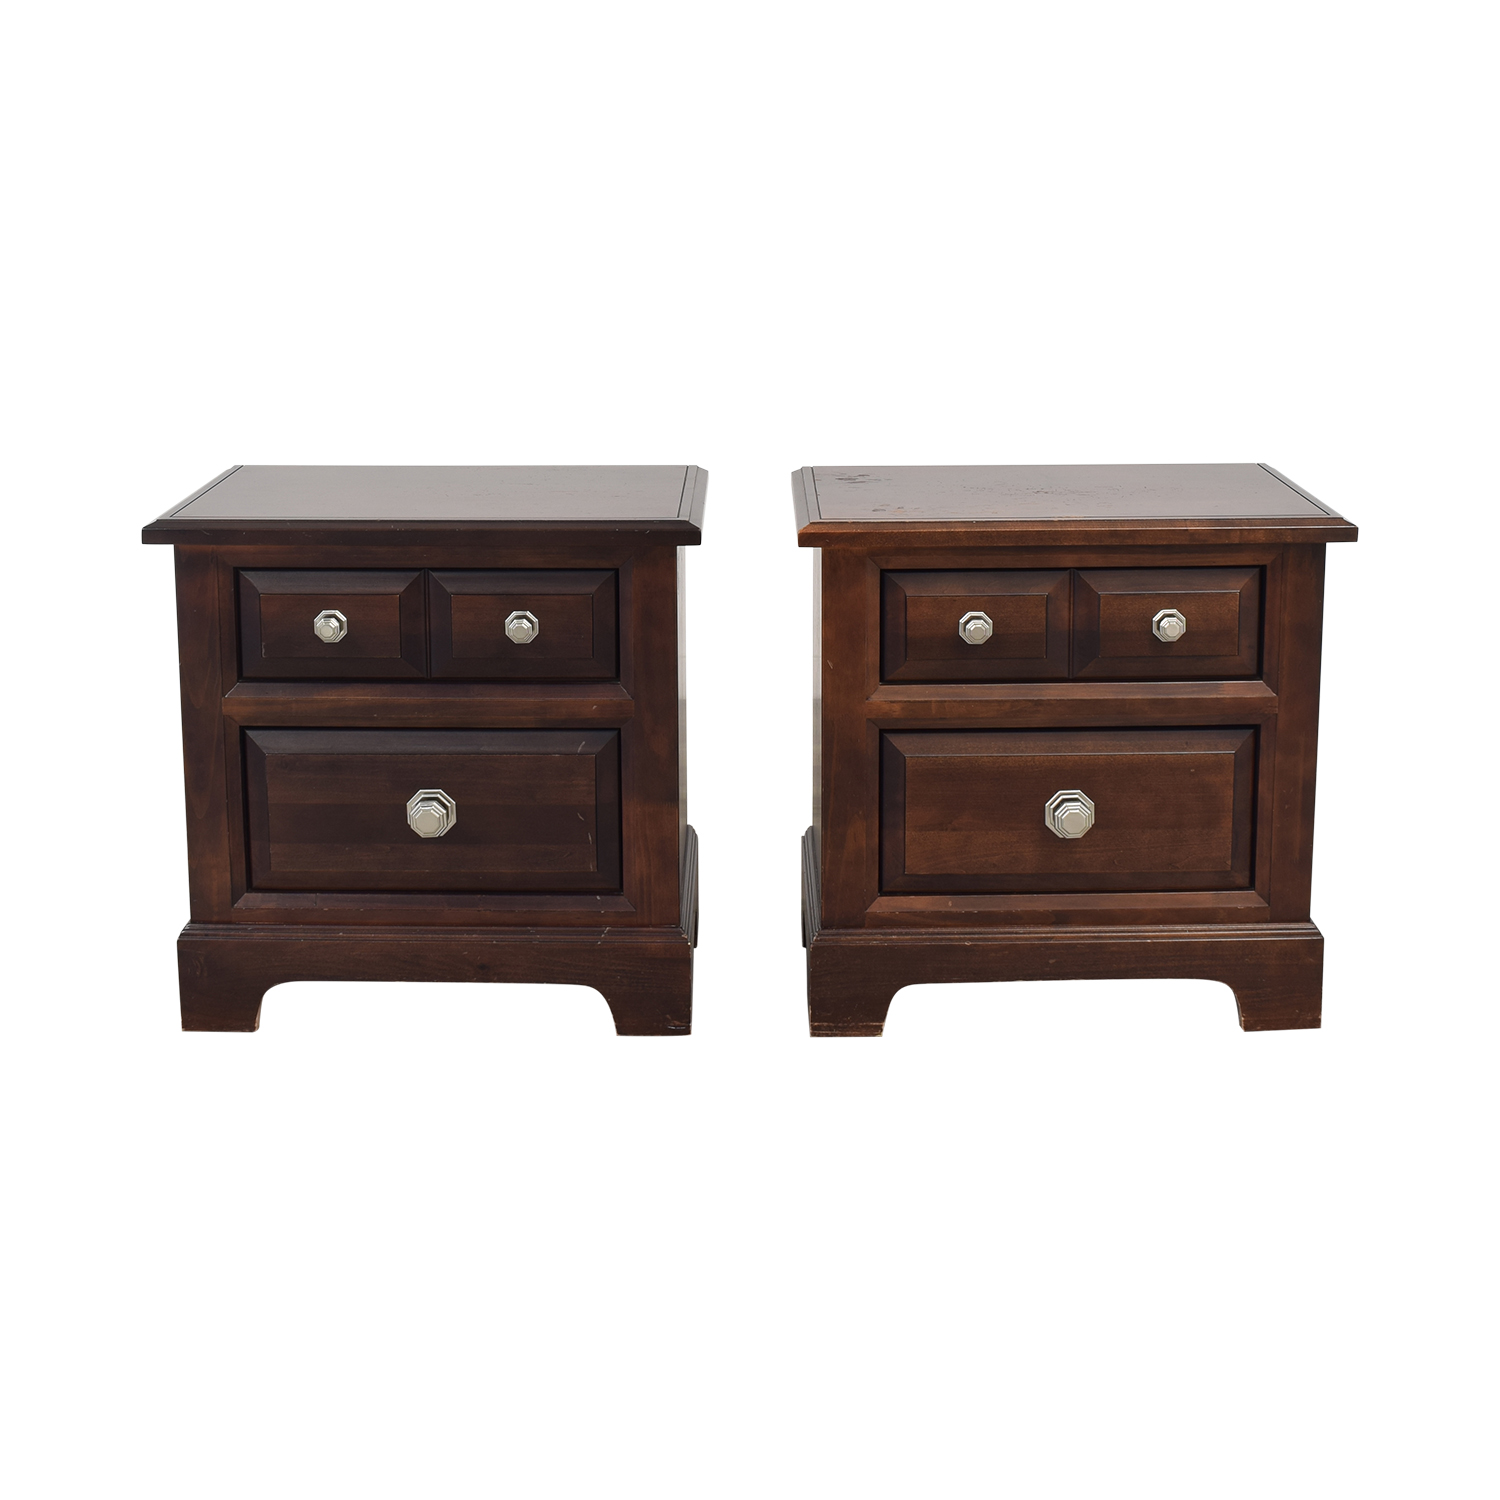 buy Raymour & Flanigan Nightstands Vaughan-Bassett